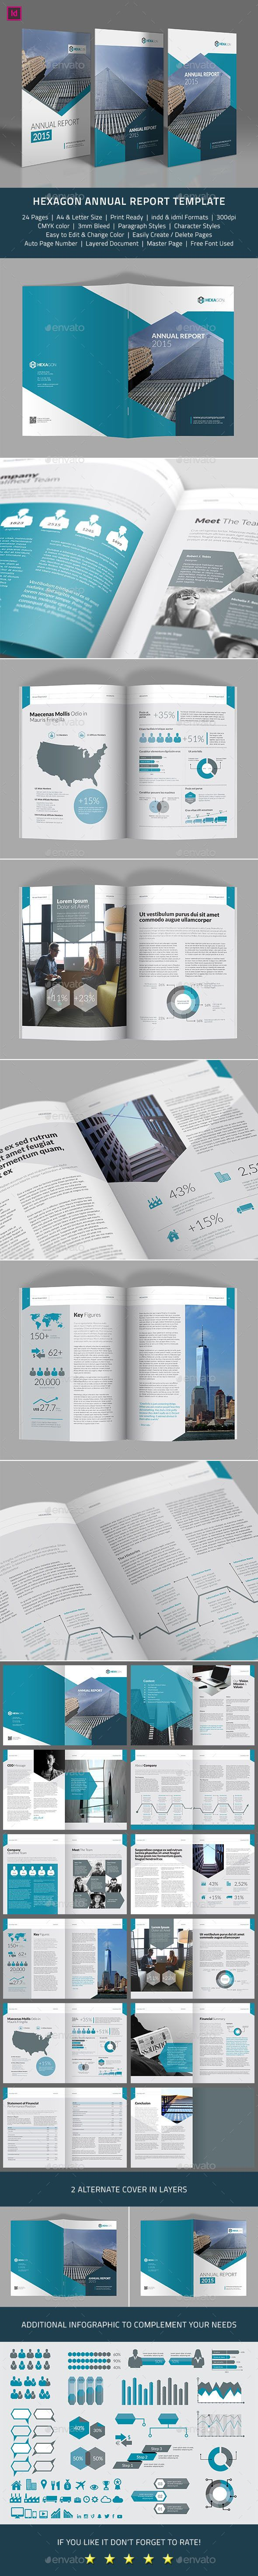 Hexagon Annual Report Template InDesign INDD #design Download: http://graphicriver.net/item/hexagon-annual-report-template/13836351?ref=ksioks